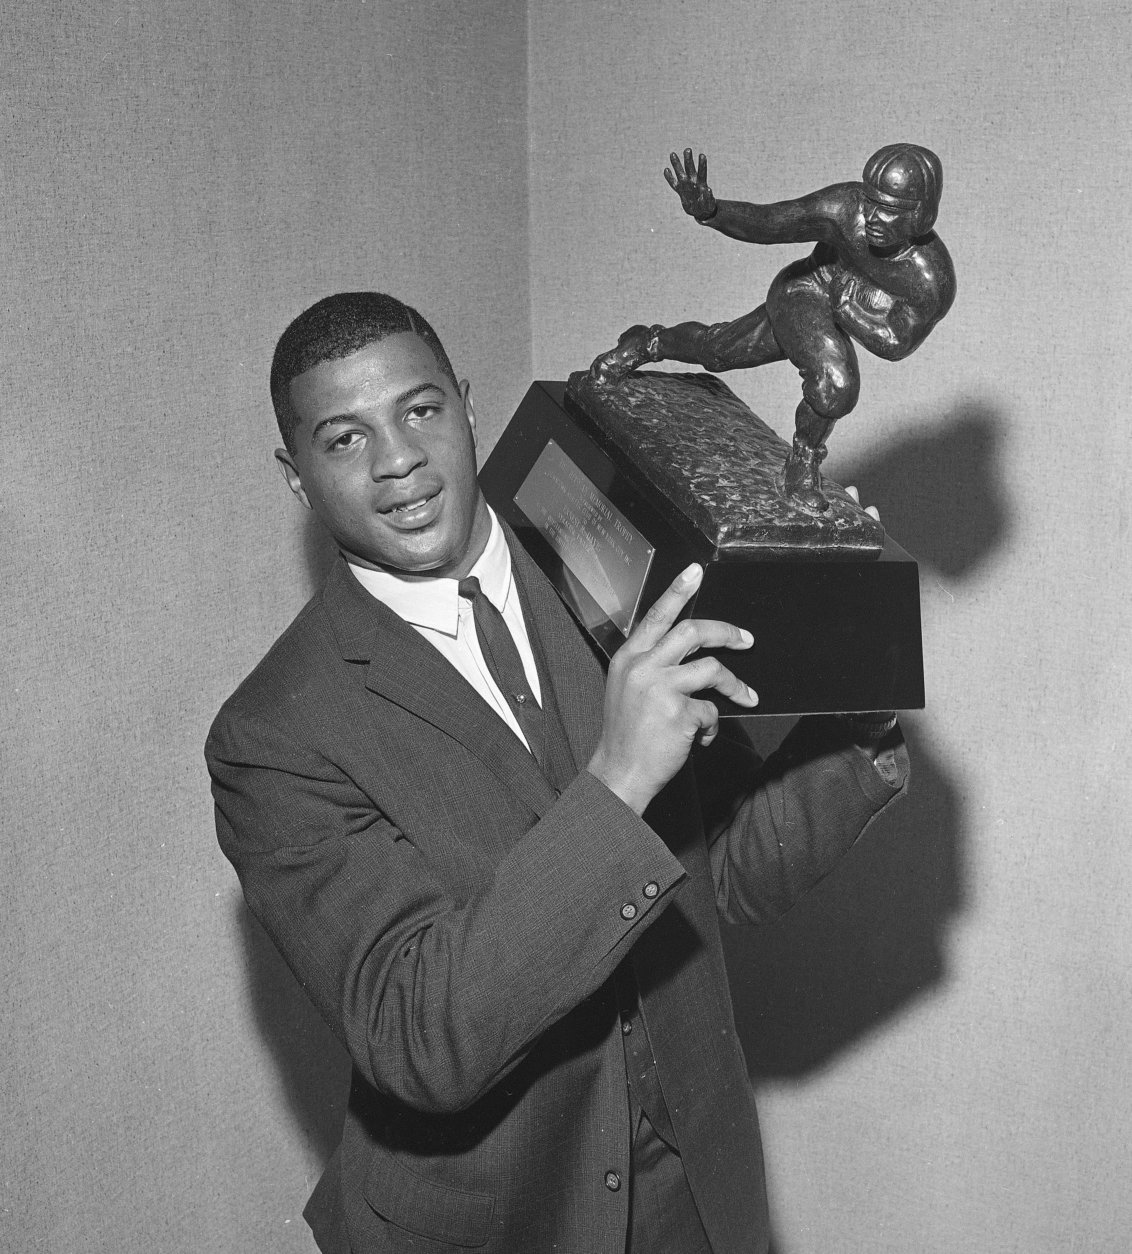 Ernie Davis, Syracuse University back, holds the Heisman Memorial Trophy which he receives Dec. 6, 1961 at a dinner in the Downtown Athletic club in New York City. The award is made annually to the nation's outstanding college football player. (AP Photo/Jack Harris)